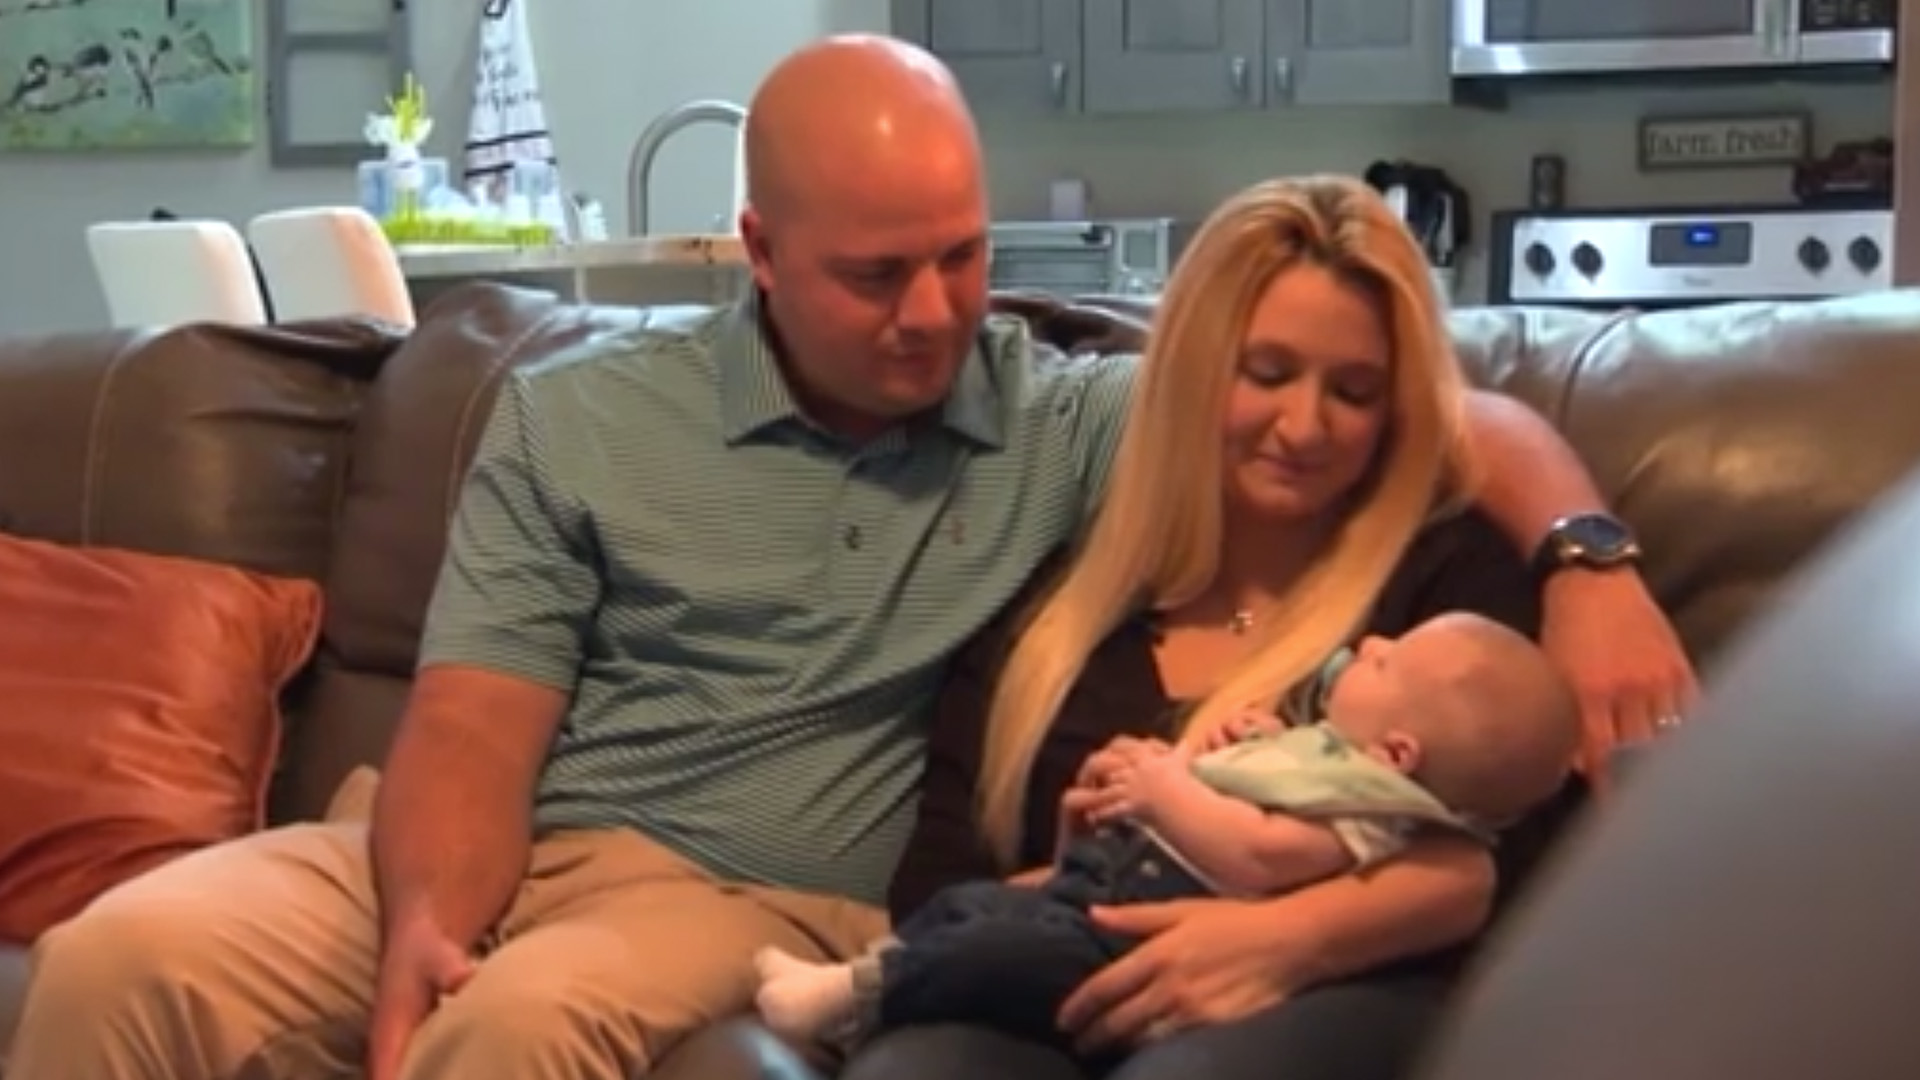 Krista and Anthony Rivera of Cape Coral were able to conceive their son, Garrett, through IVF treatment that they won on a radio show. (Credit: CNN)